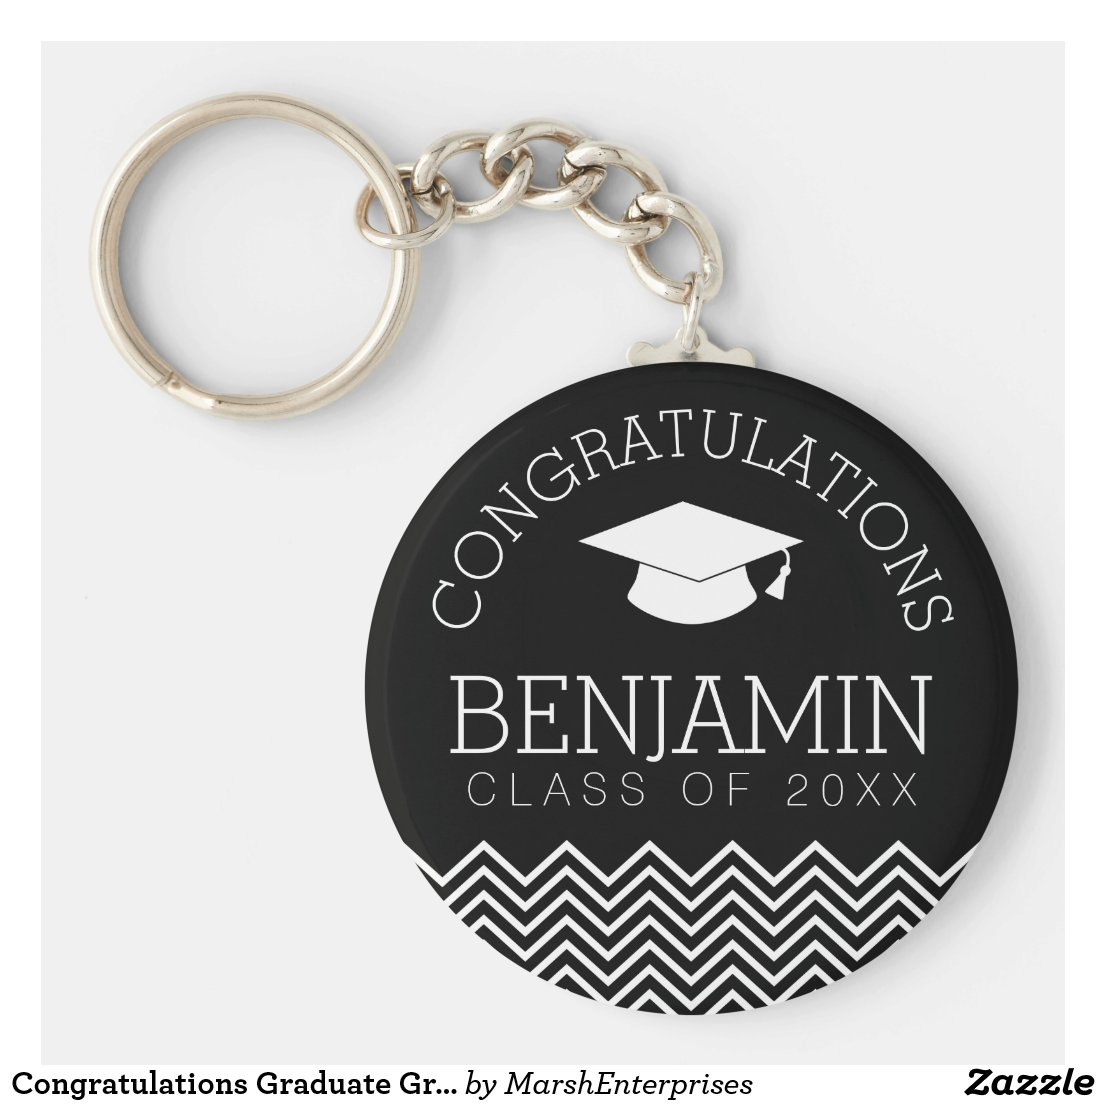 Congratulations Graduate - Personalised Graduation